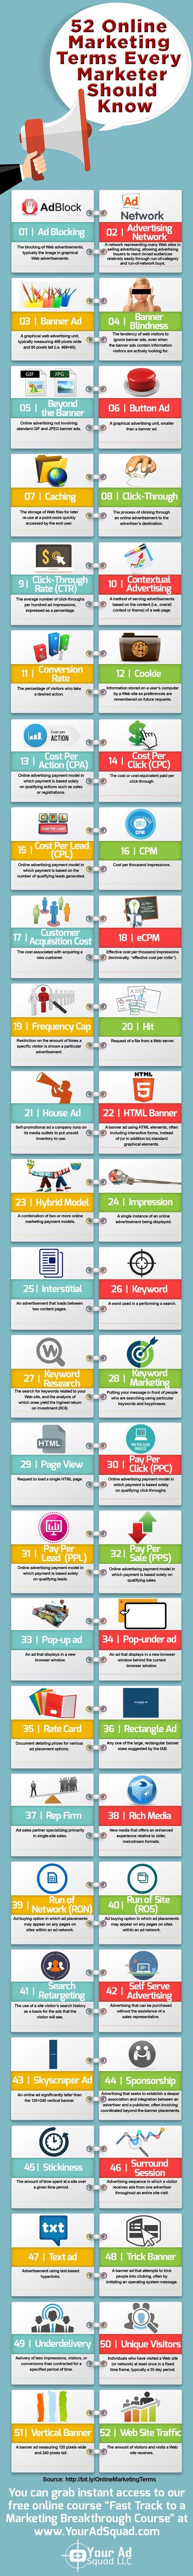 52 Online Marketing Terms A Marketer Should Know  - If you feel lost when you hear people talking about online marketing you need to learn these 52 most used online marketing terms. - #infographic